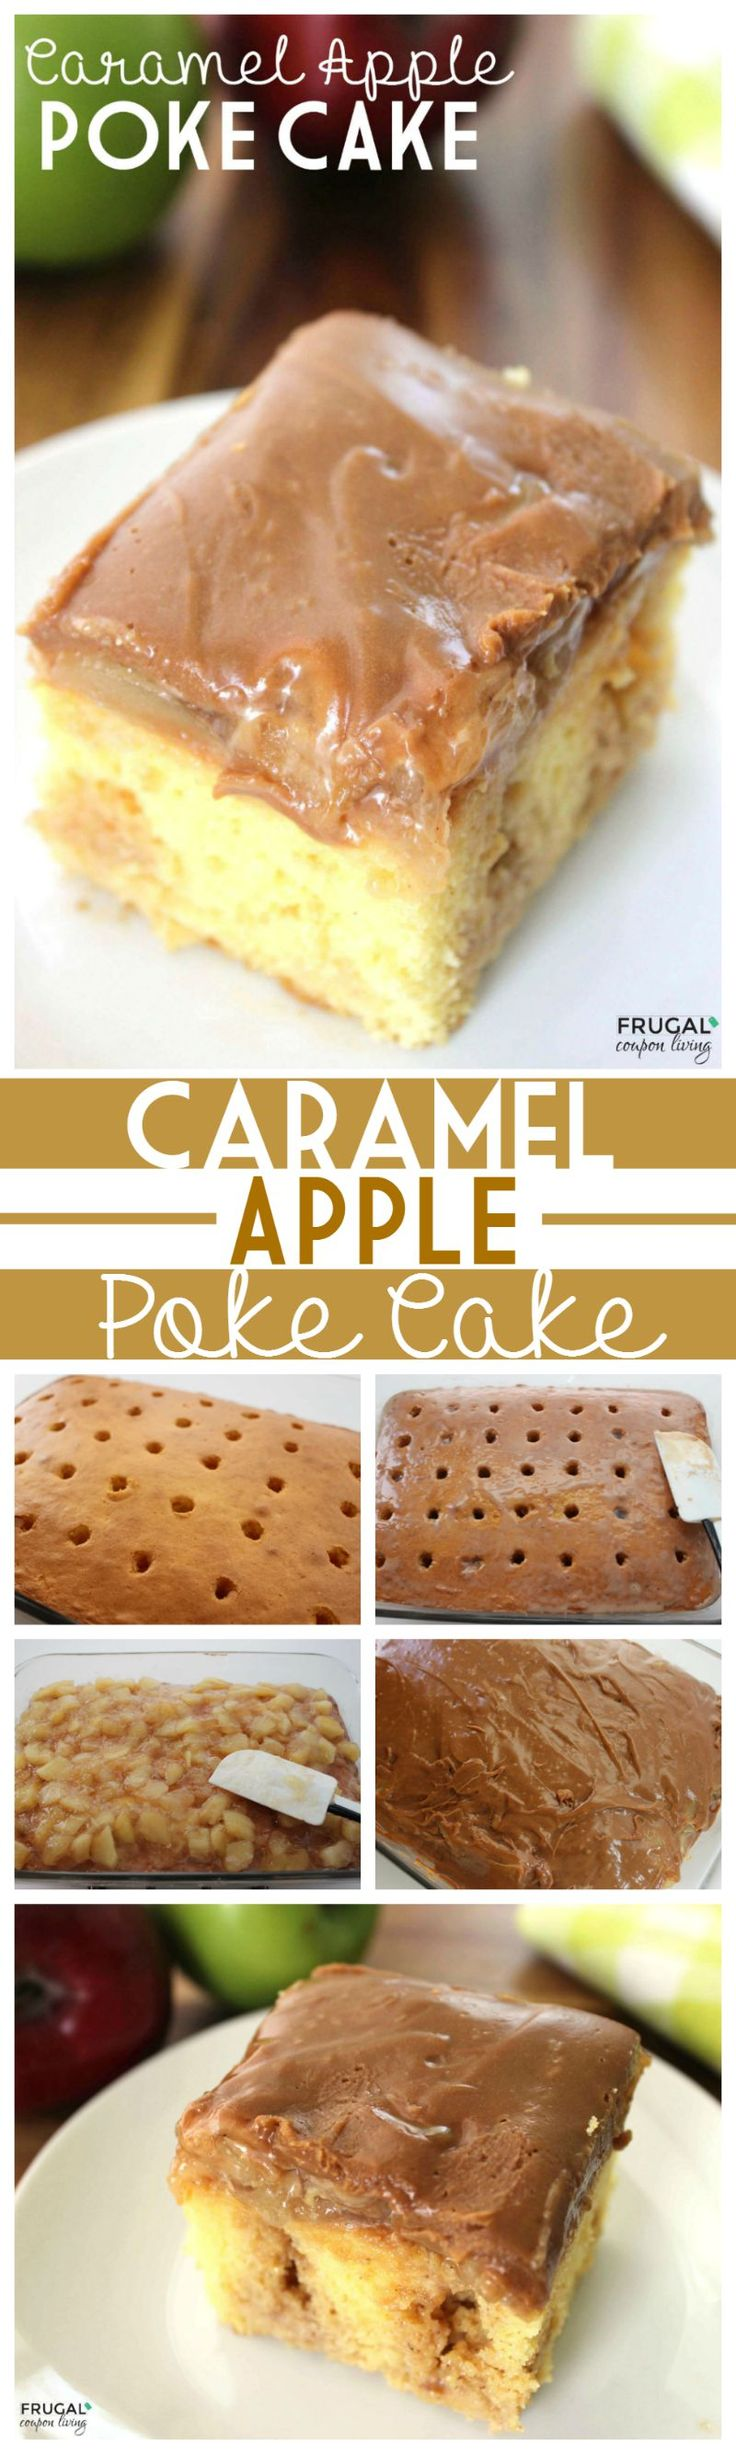 Caramel Apple Poke Cake on Frugal Coupon LIving. Fall Cake Idea, Caramel Apple recipe, easy to make cake using a cake box mix.